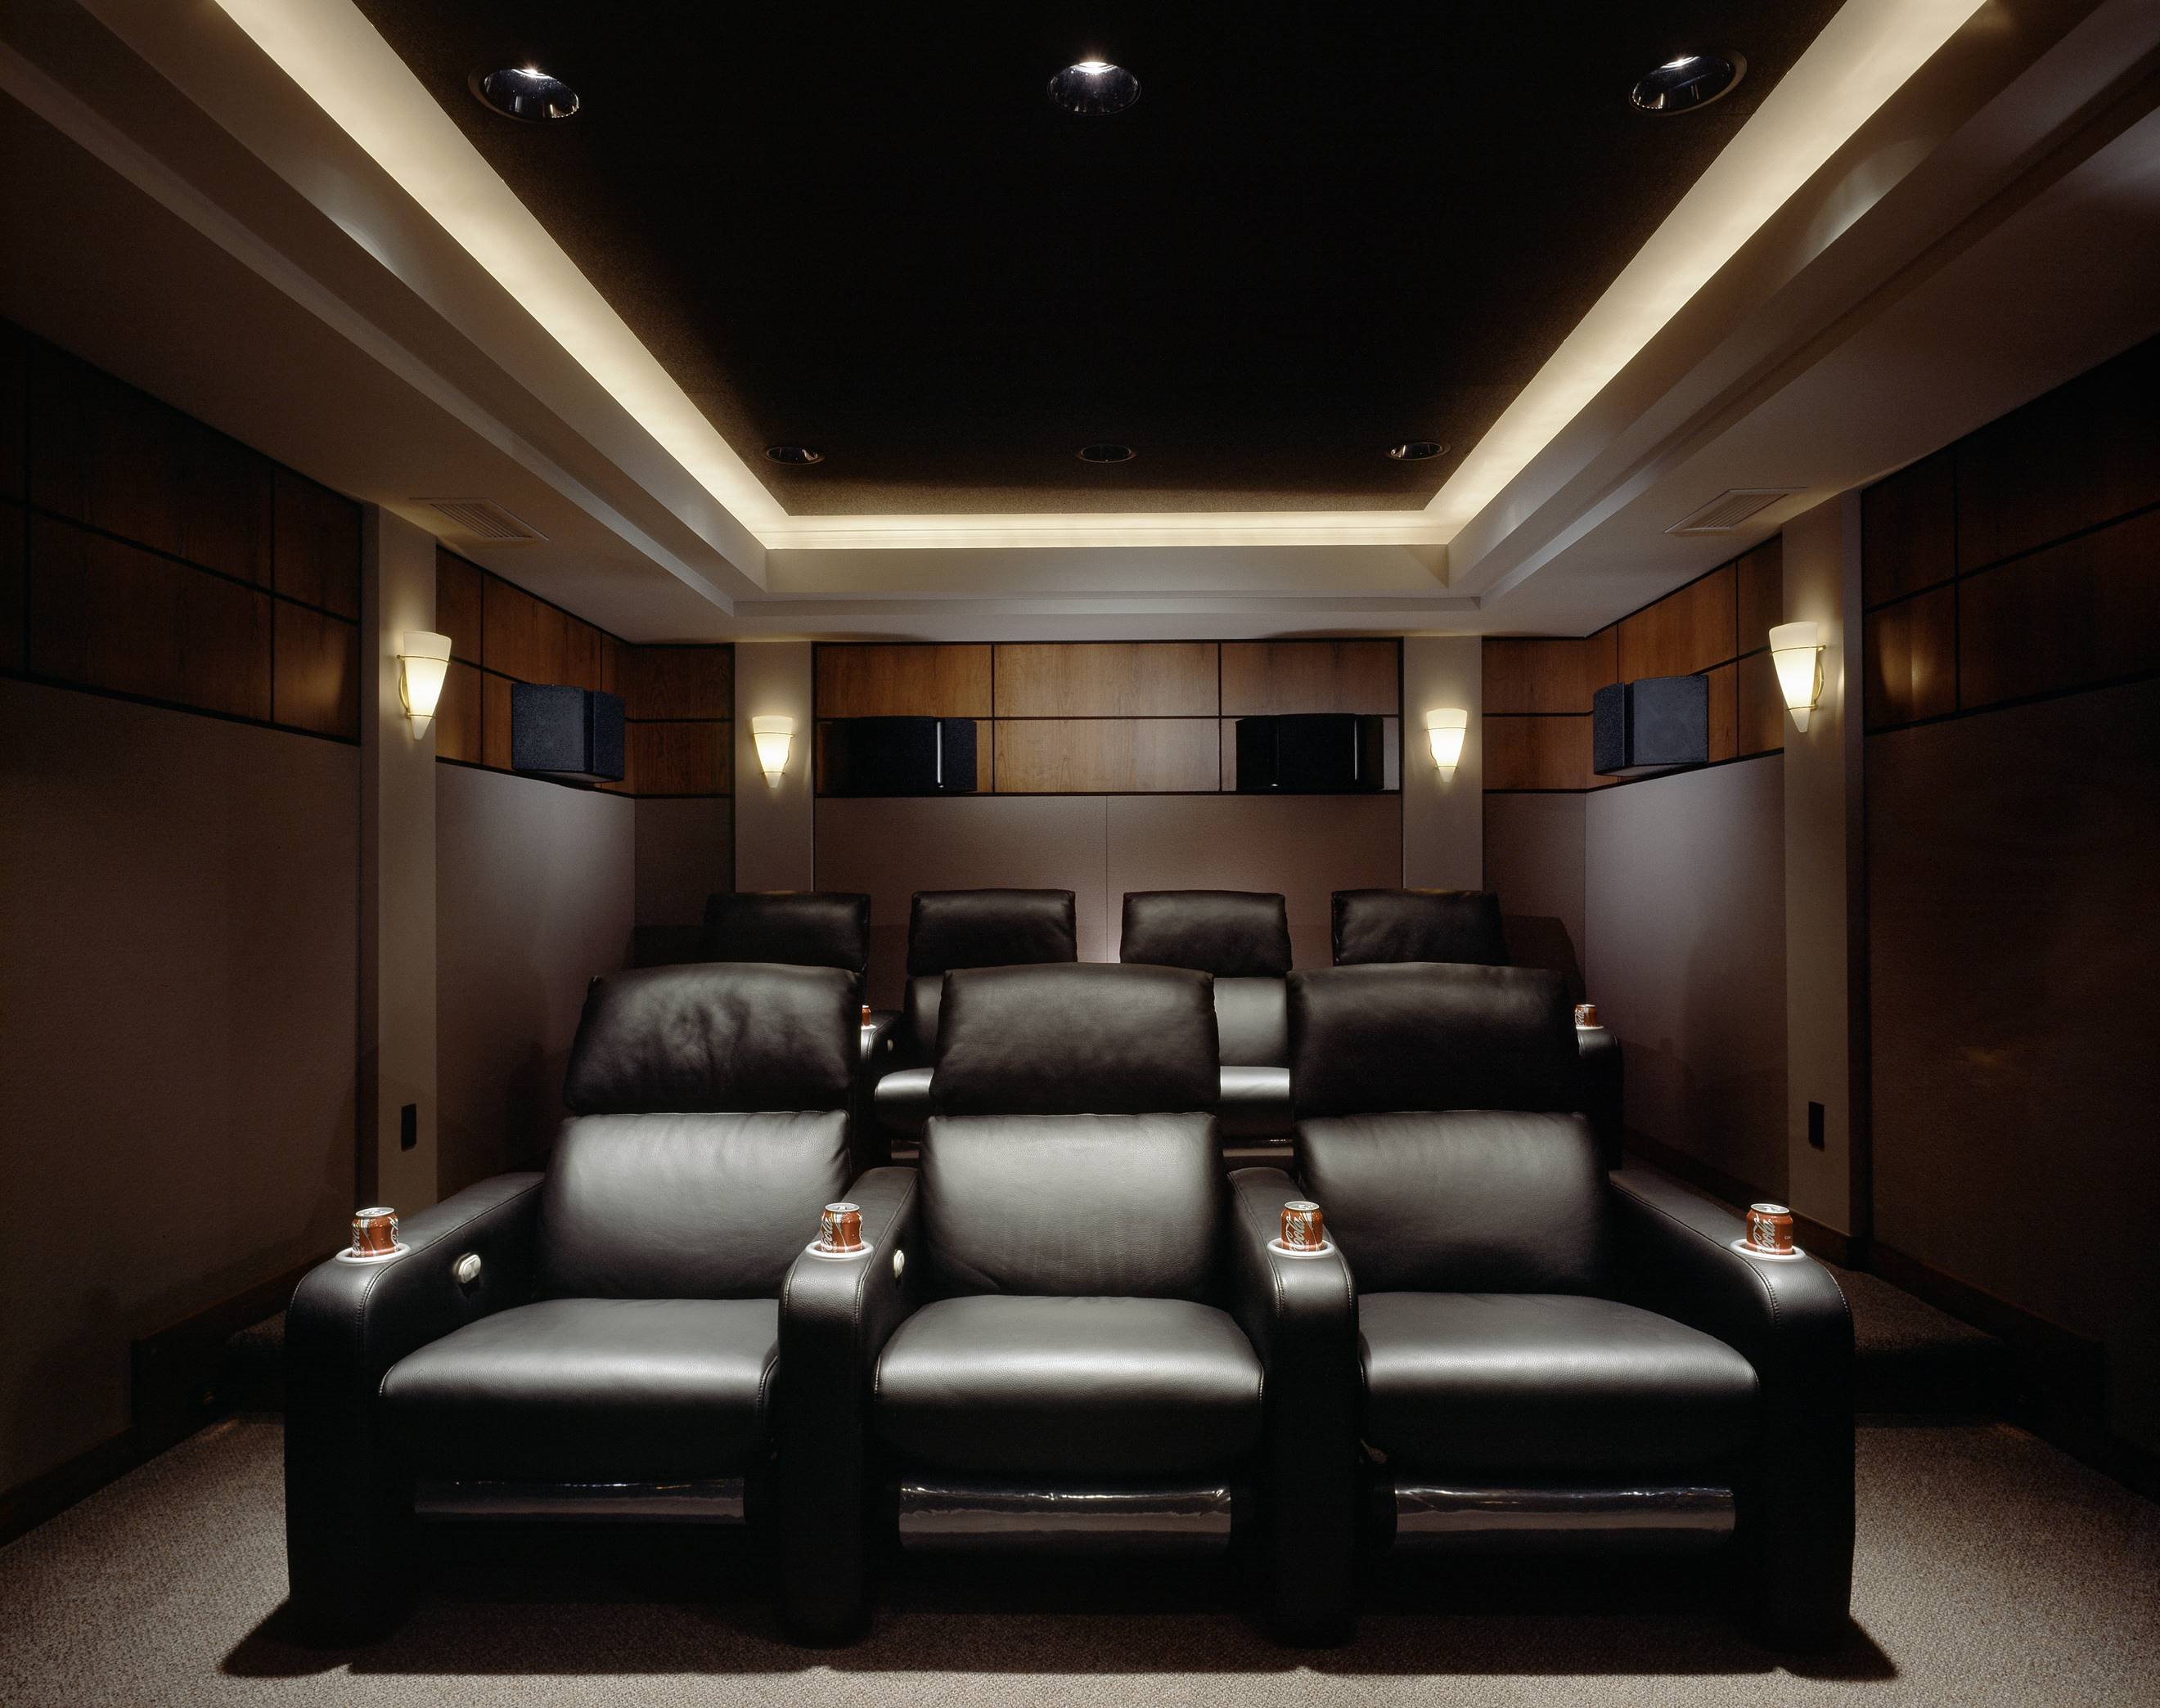 25 inspirational modern home movie theater design ideas Home theater architecture